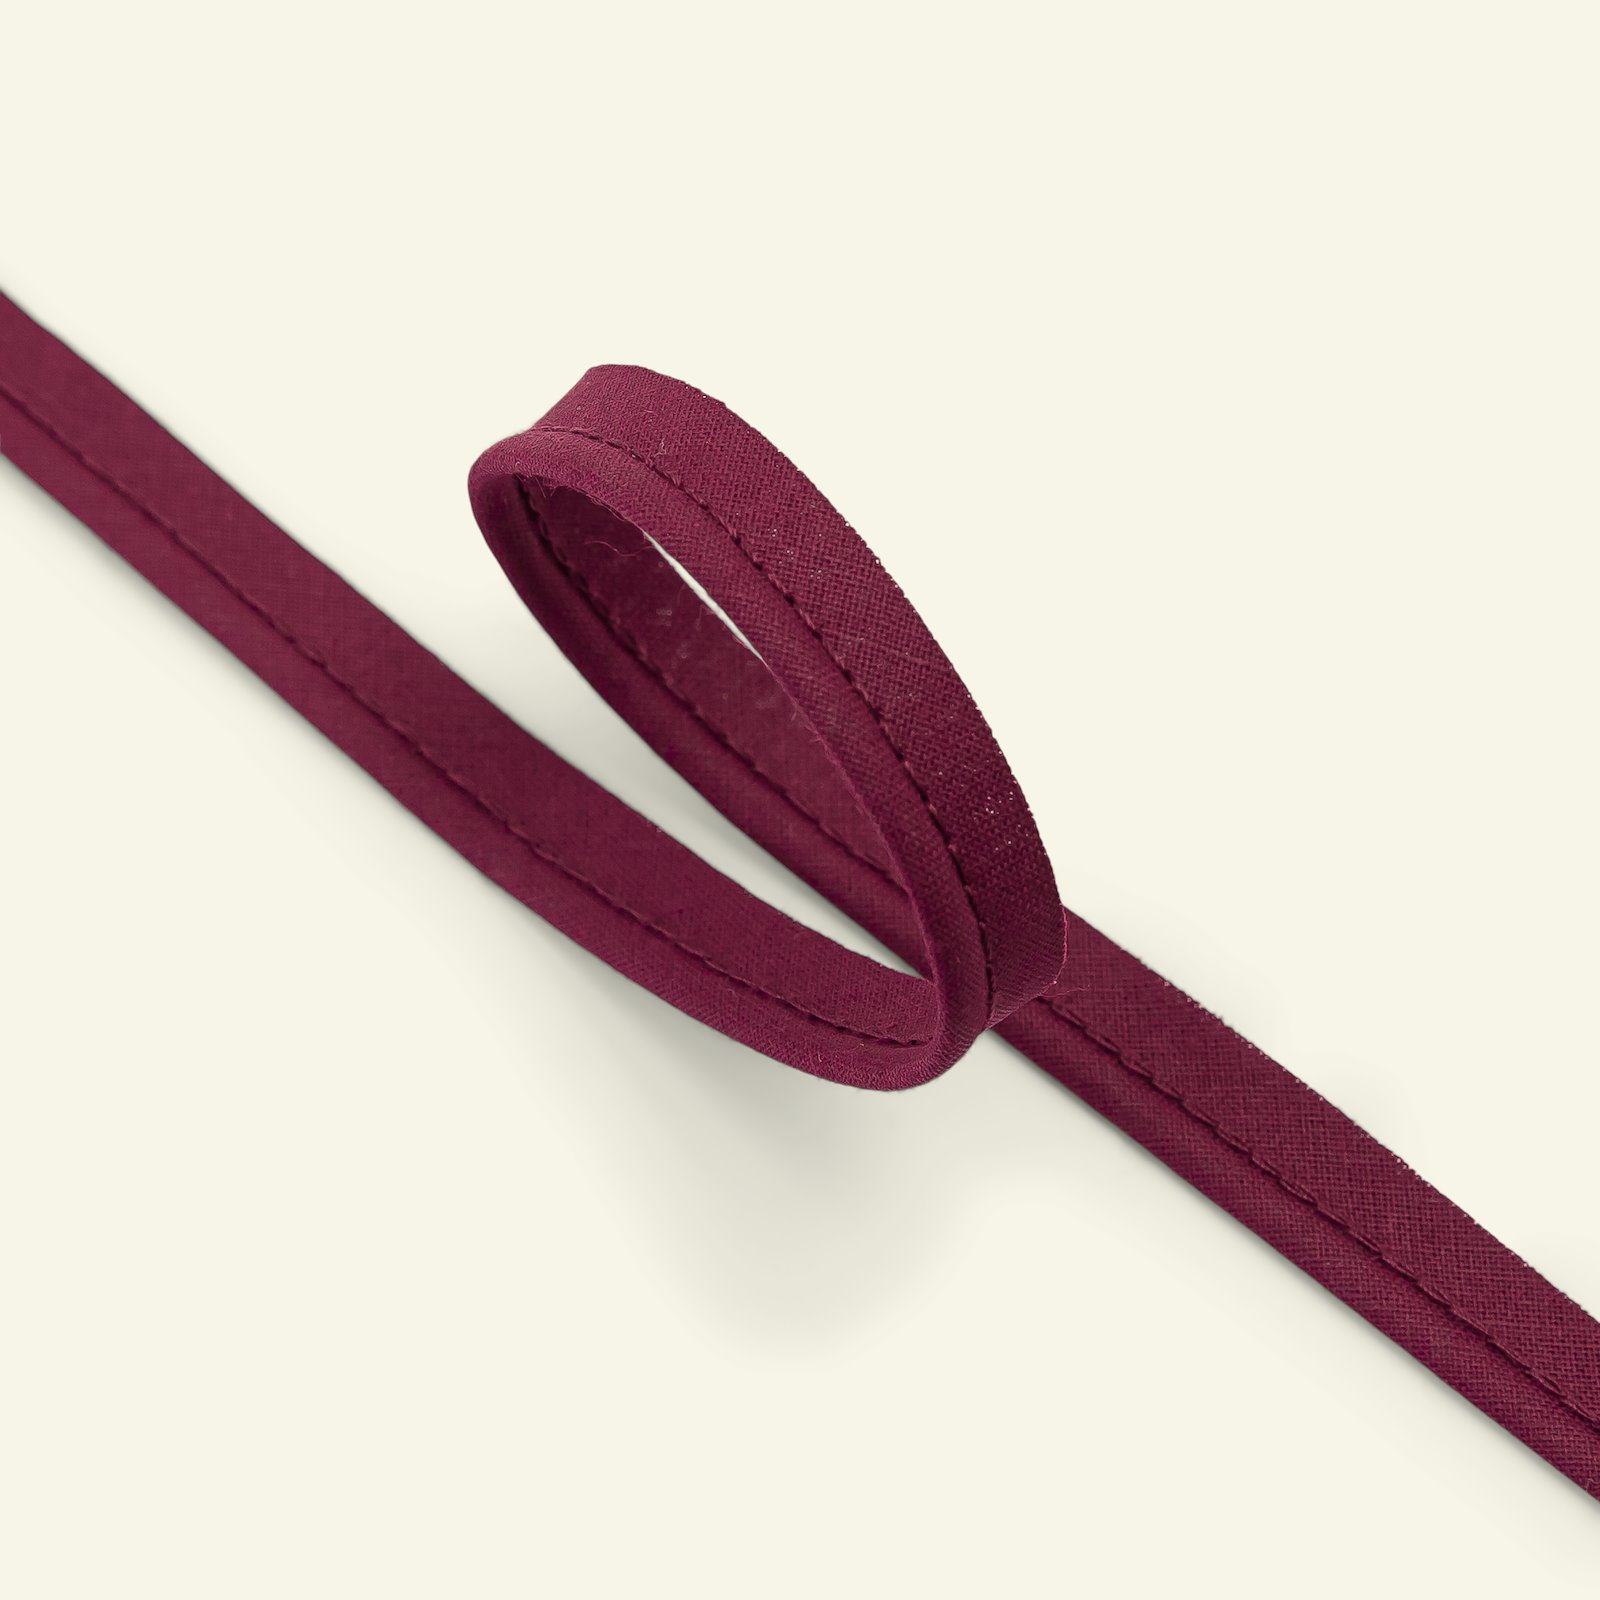 Piping ribbon cotton 4mm bordeaux 5m 71014_pack